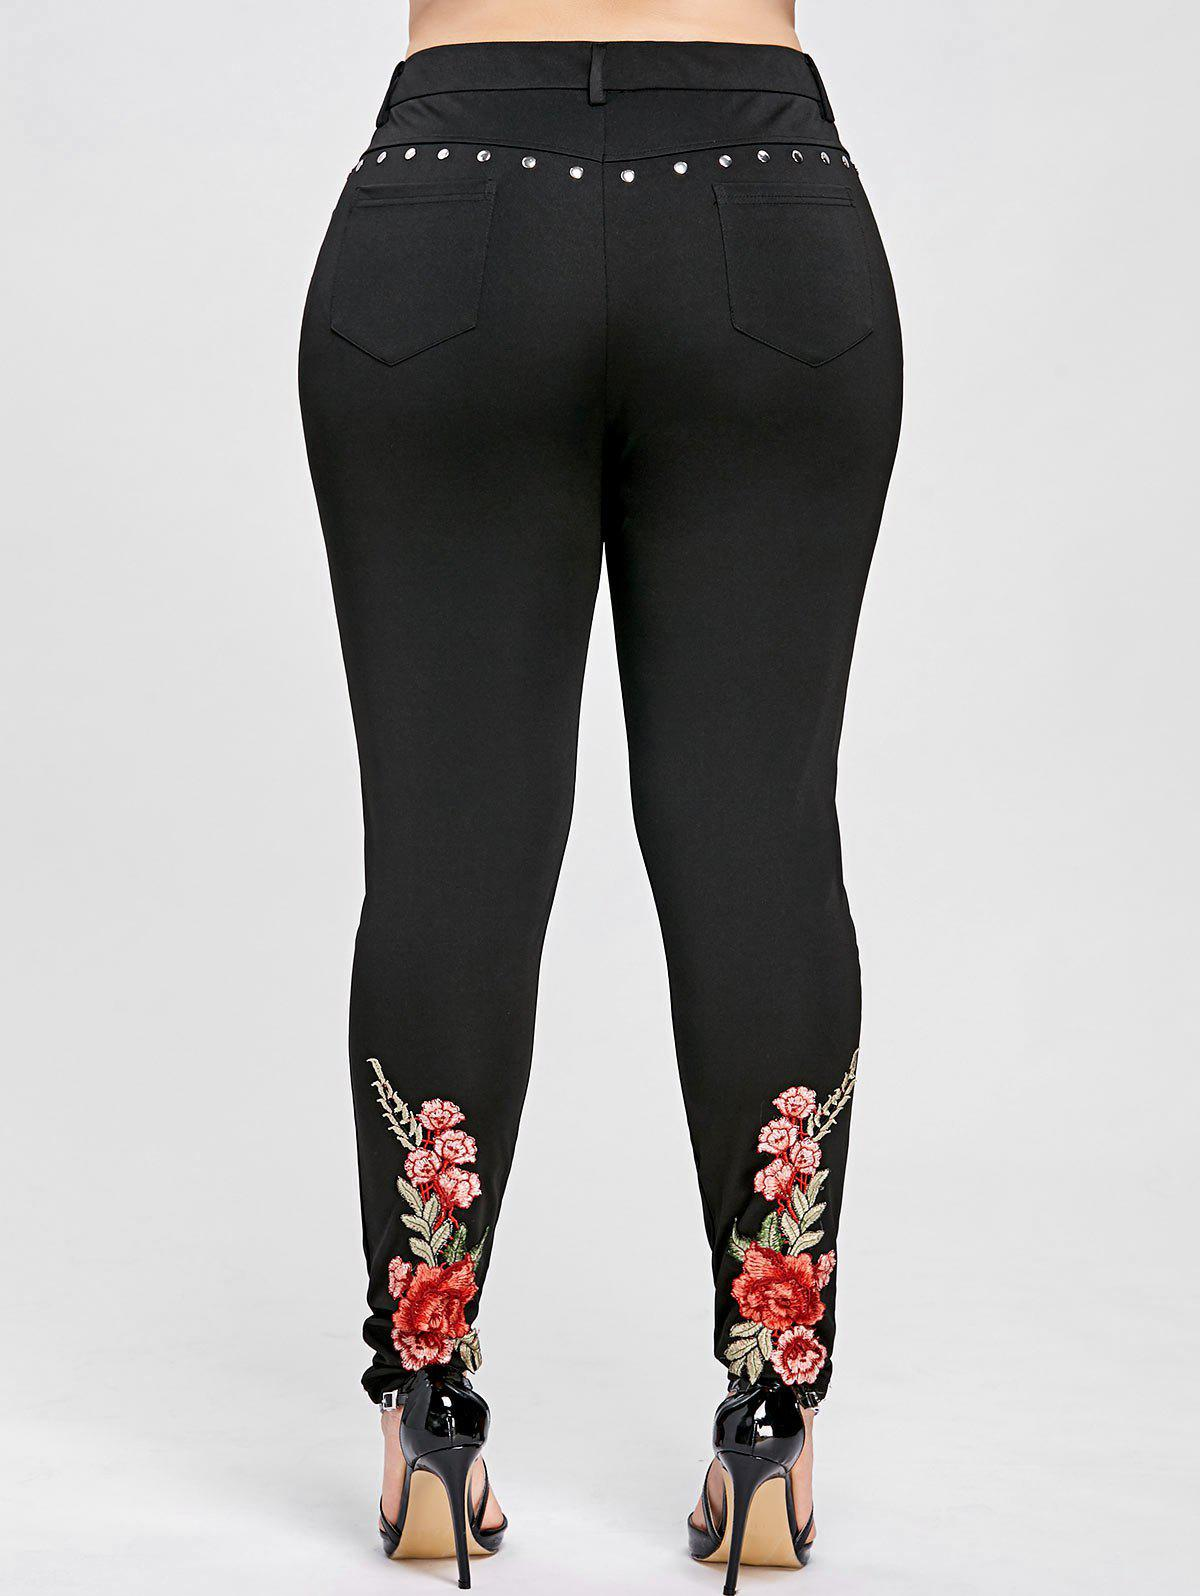 plus size clothing for women, cheap cute and sexy plus size